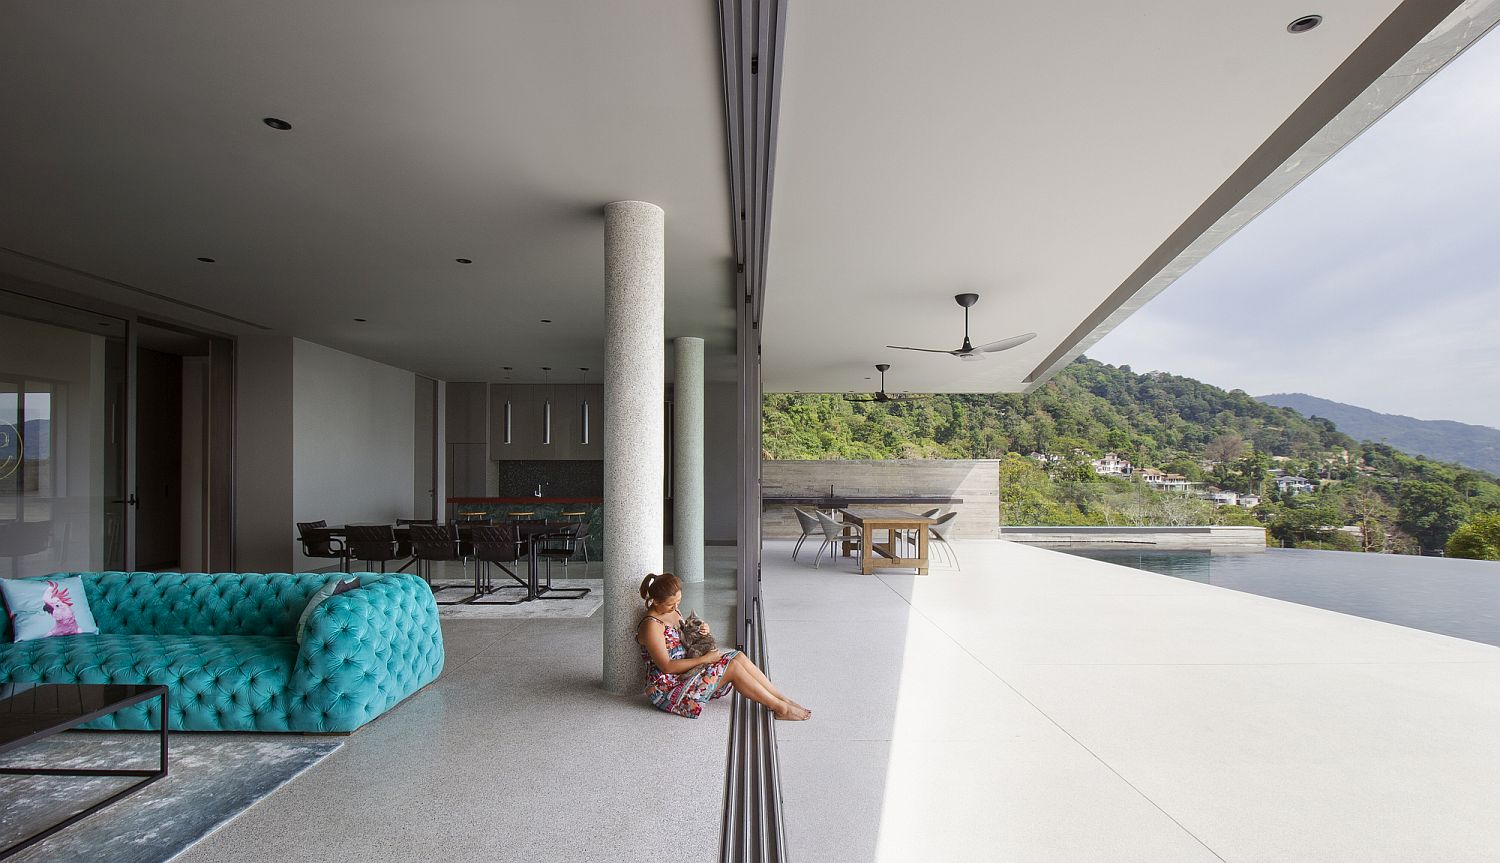 Sliding glass doors delineate the living area from the deck and pool easily